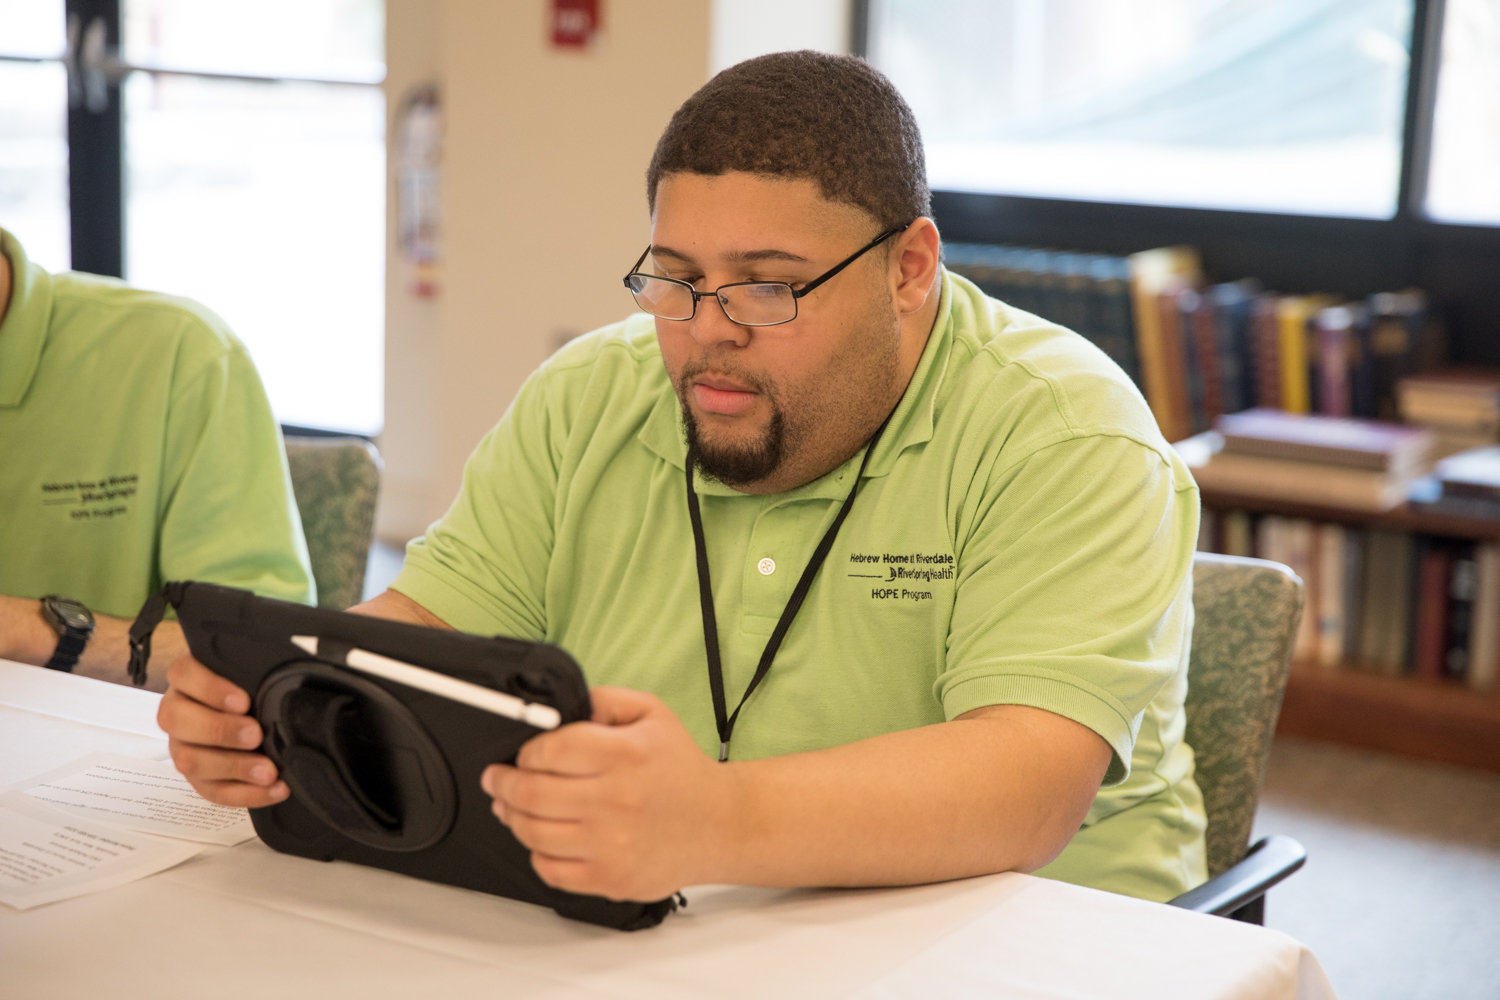 Rafael Troche works with a third generation iPad Air at the Hebrew Home at Riverdale, which recently used grant money to purchase the tablet computers for HOPE students, like Troche, to use on-site.